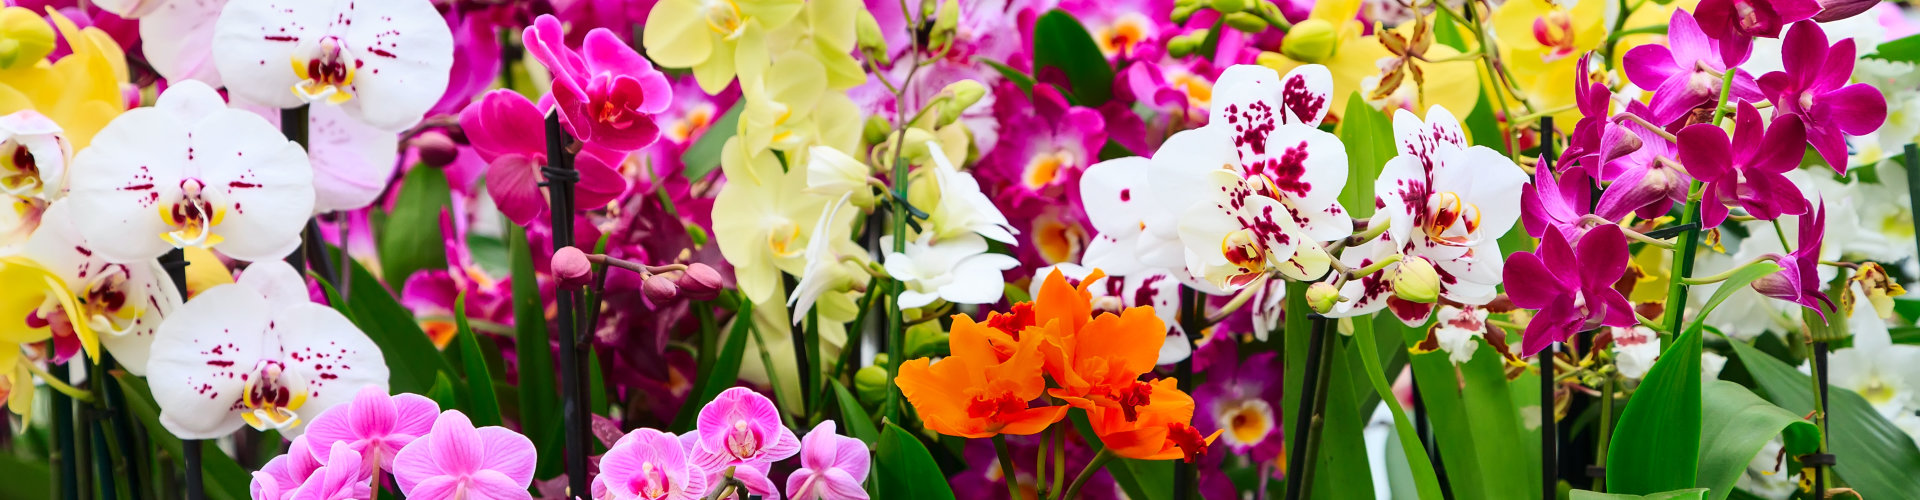 variety of orchids